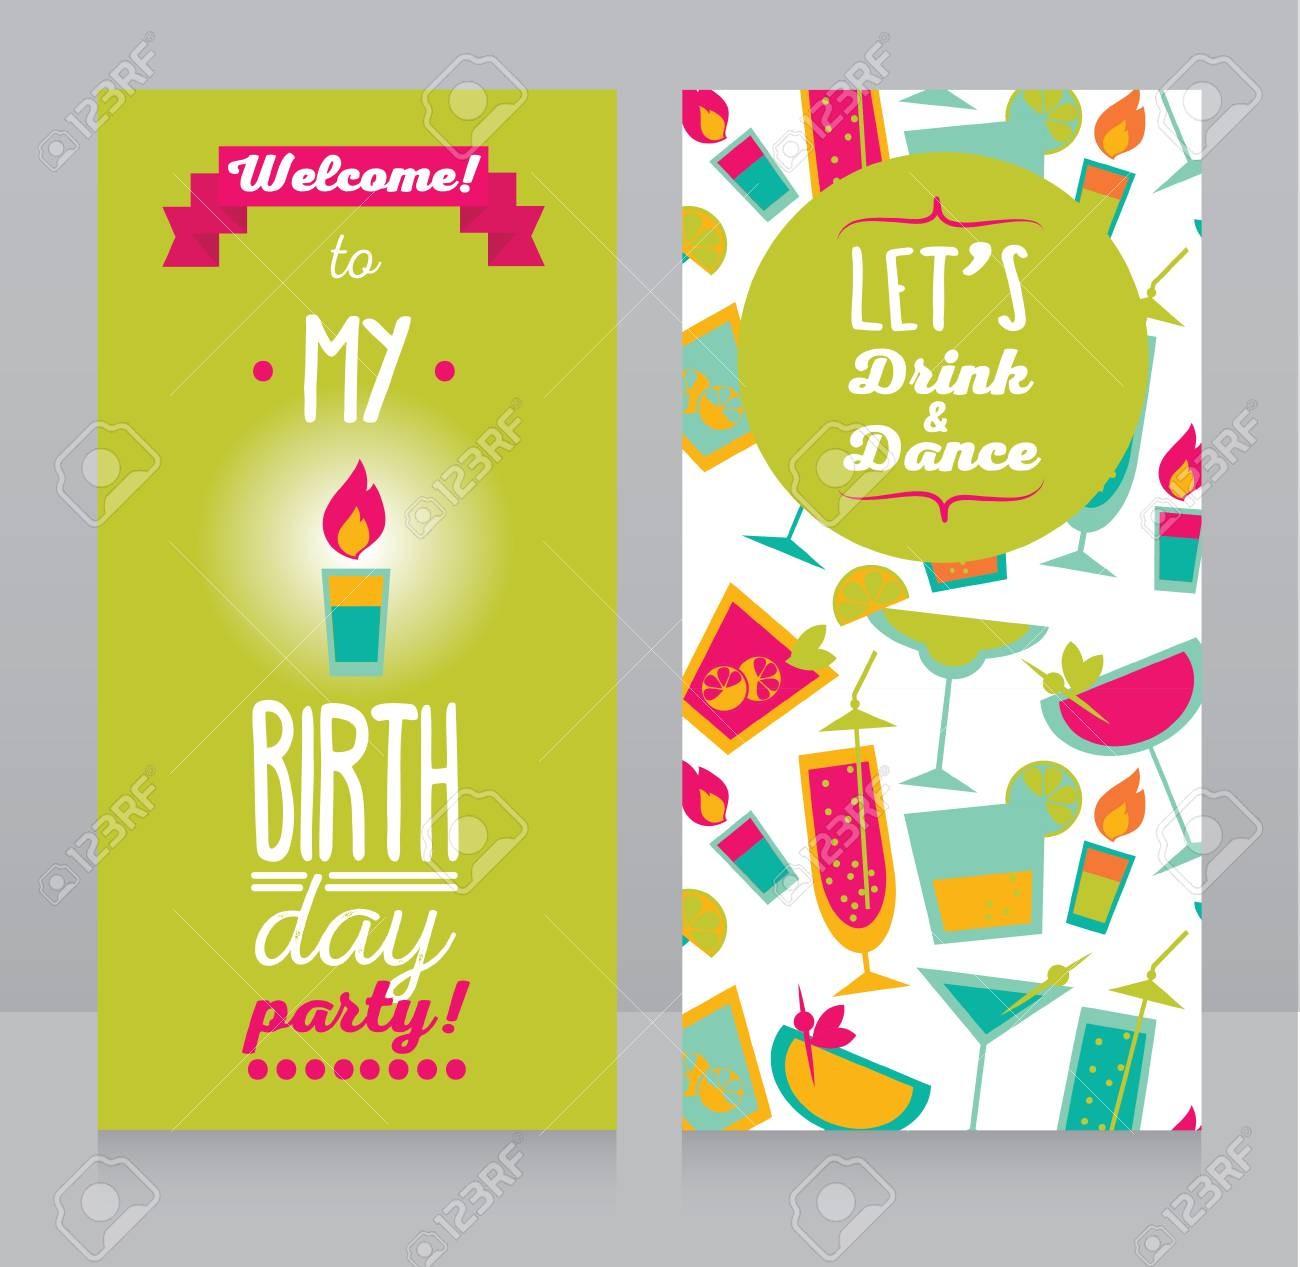 Invitation for birthday party can be used as flyer for bar party invitation for birthday party can be used as flyer for bar party vector illustration stopboris Images